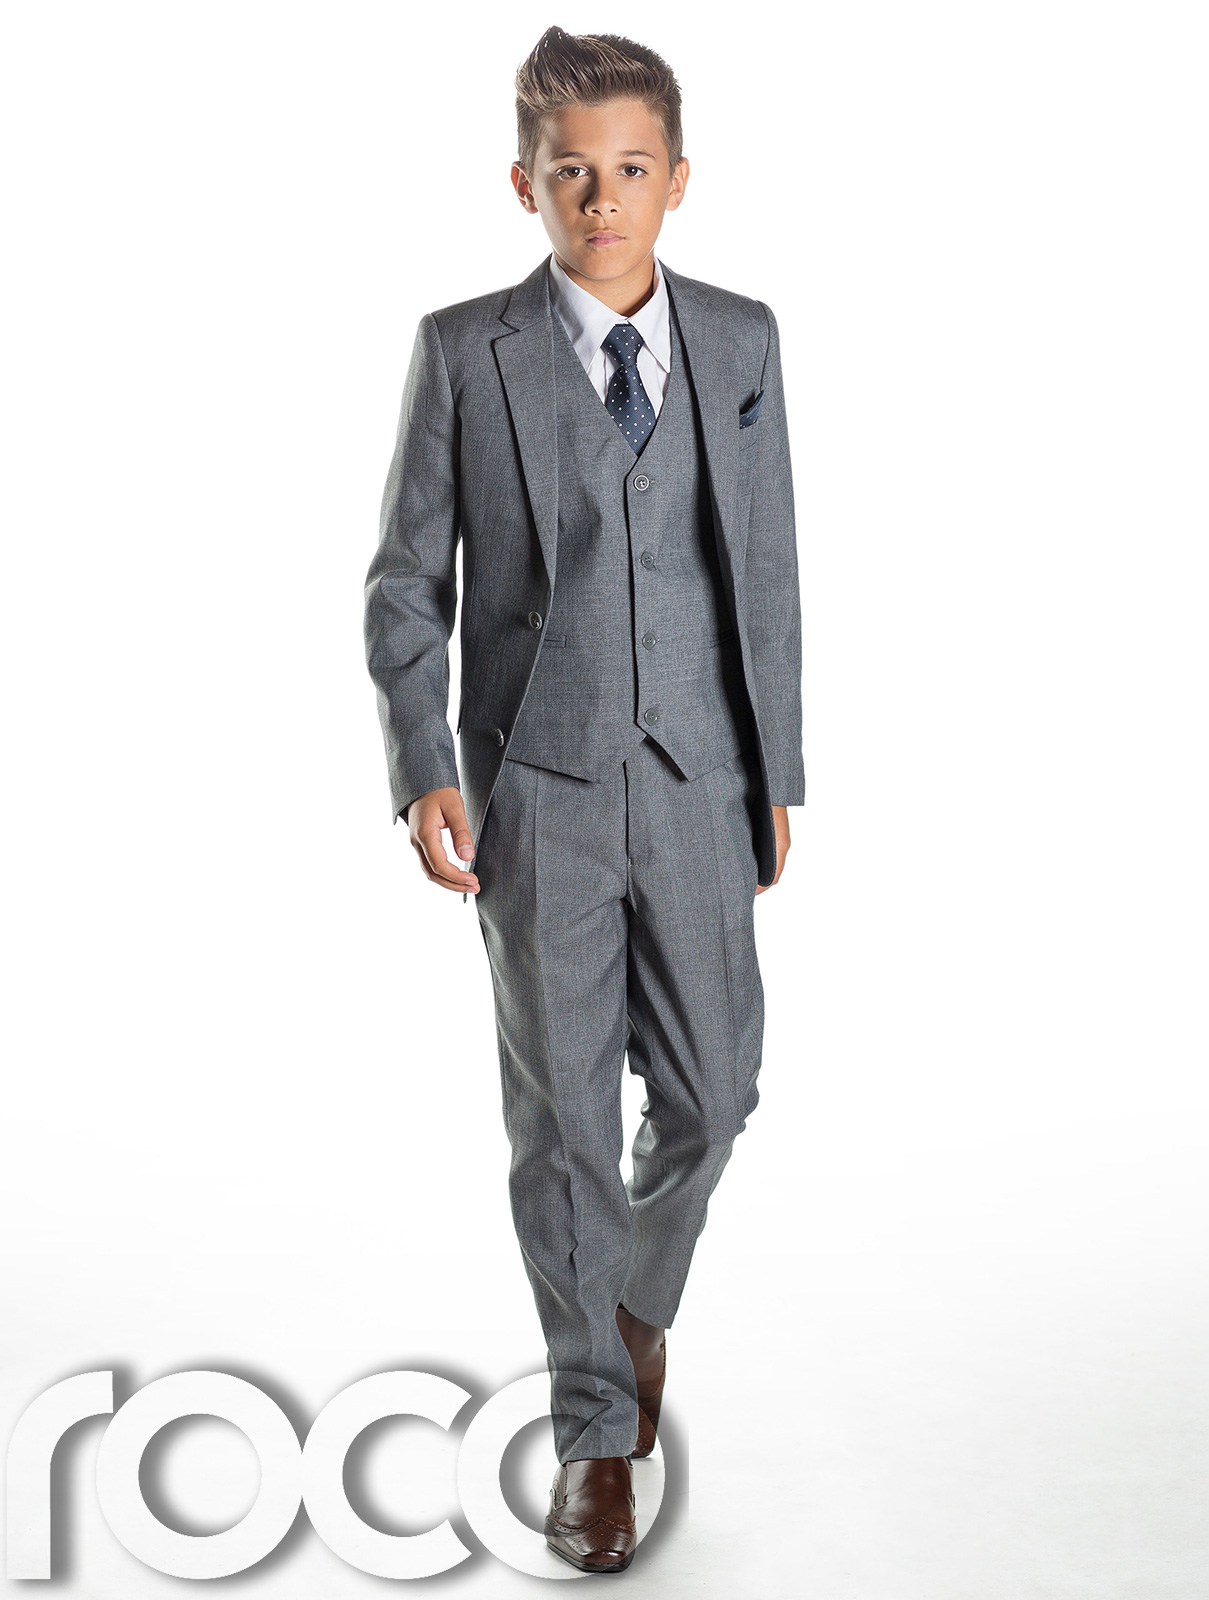 Boys grey suit slim fit suits page boy suits prom suits for Boys dress clothes wedding